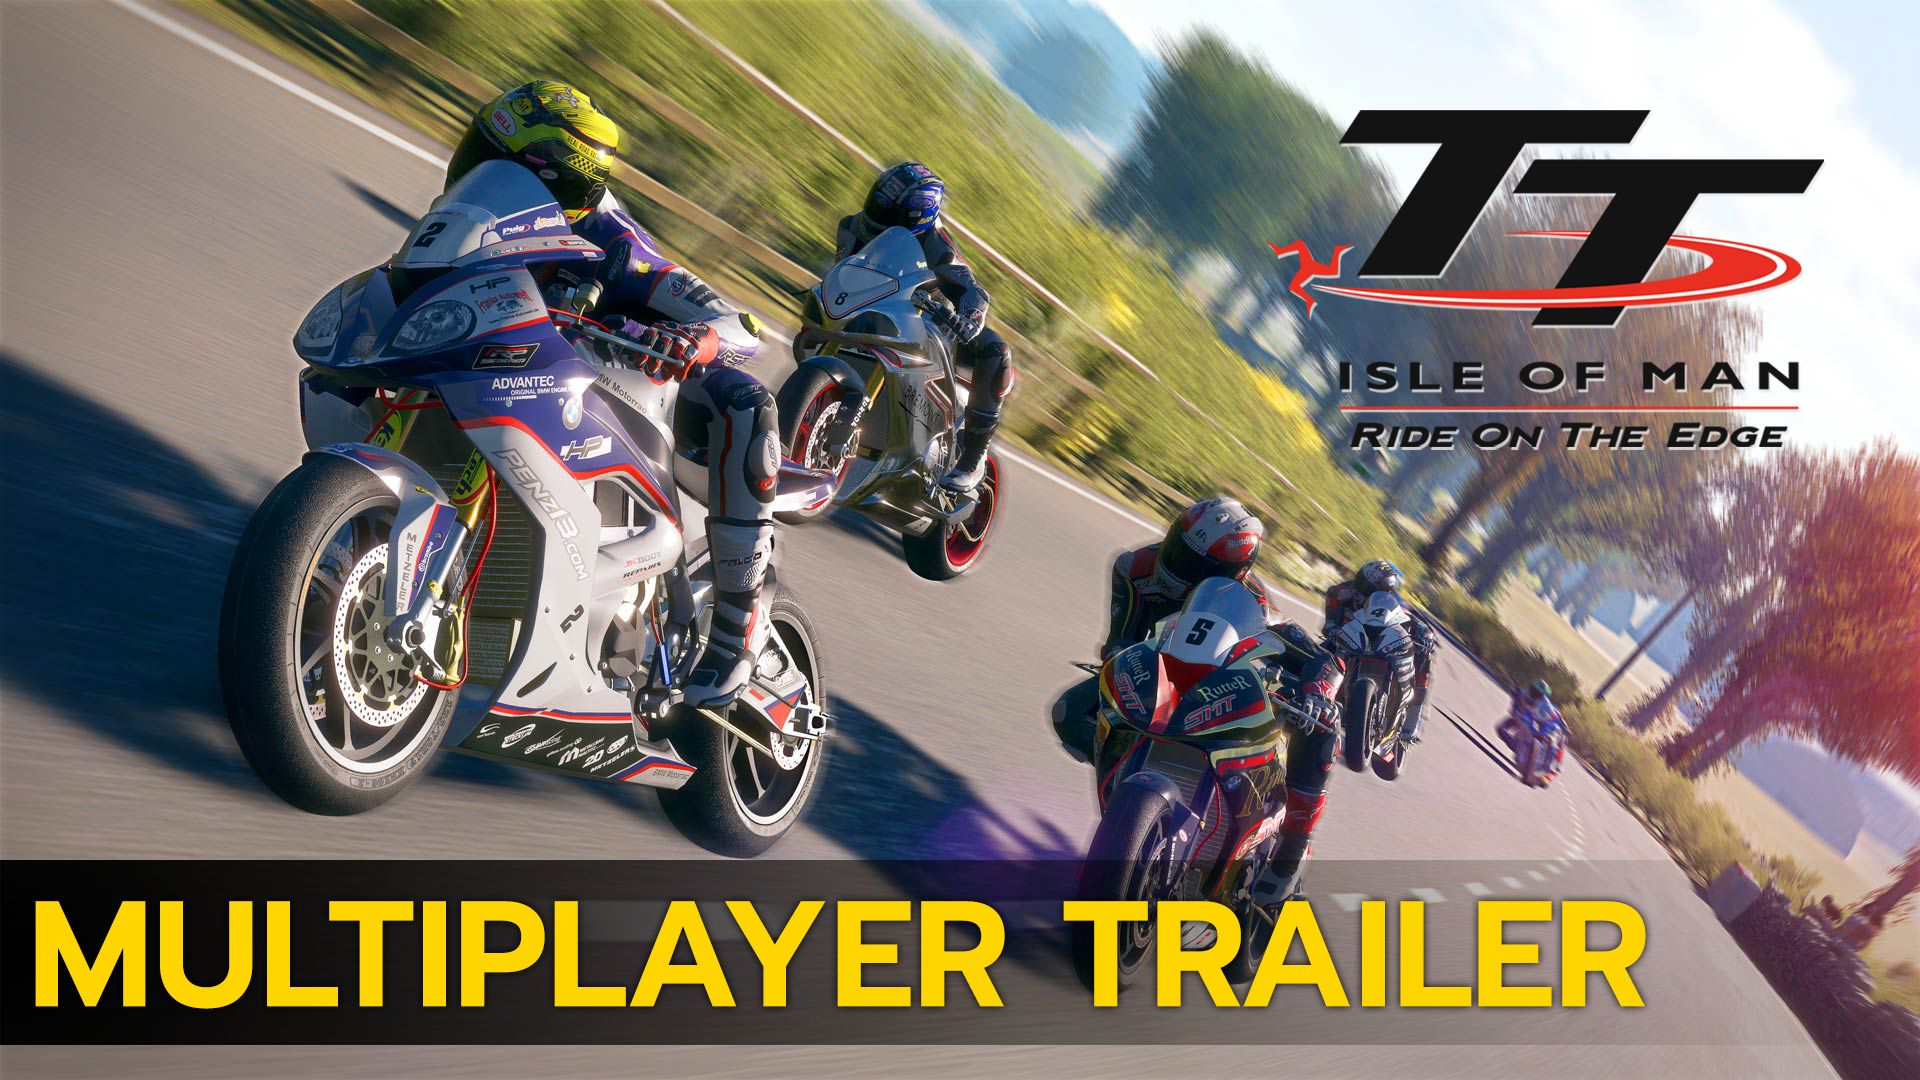 TT Isle of Man - Multiplayer Trailer